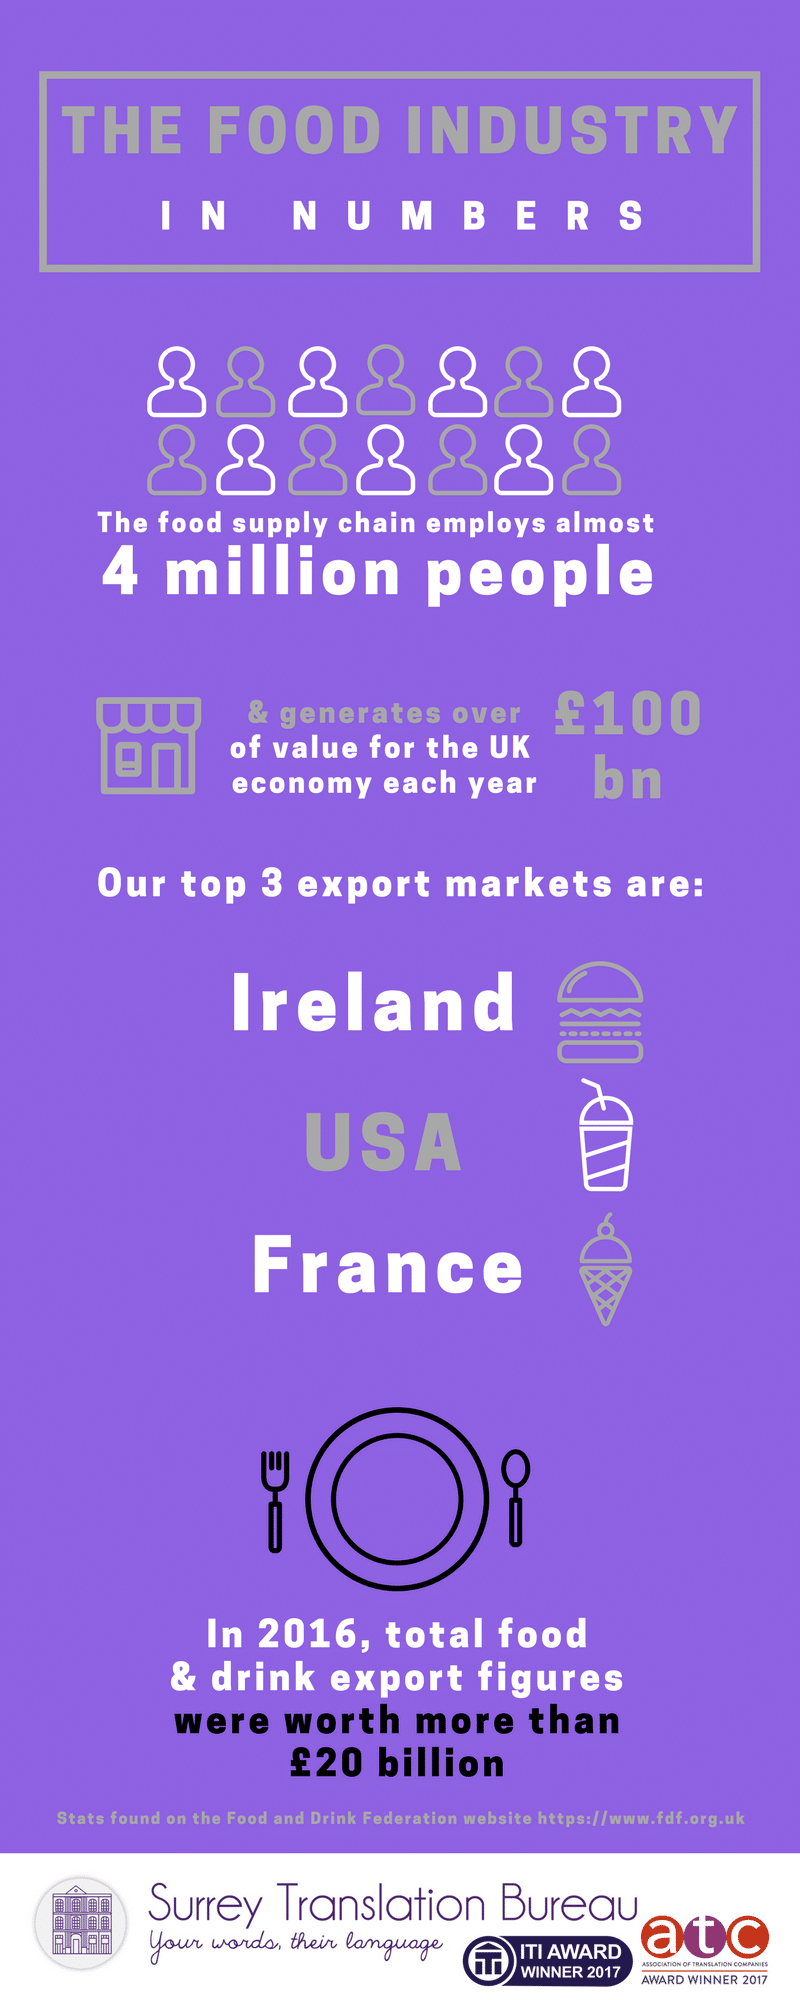 UK food industry export figures